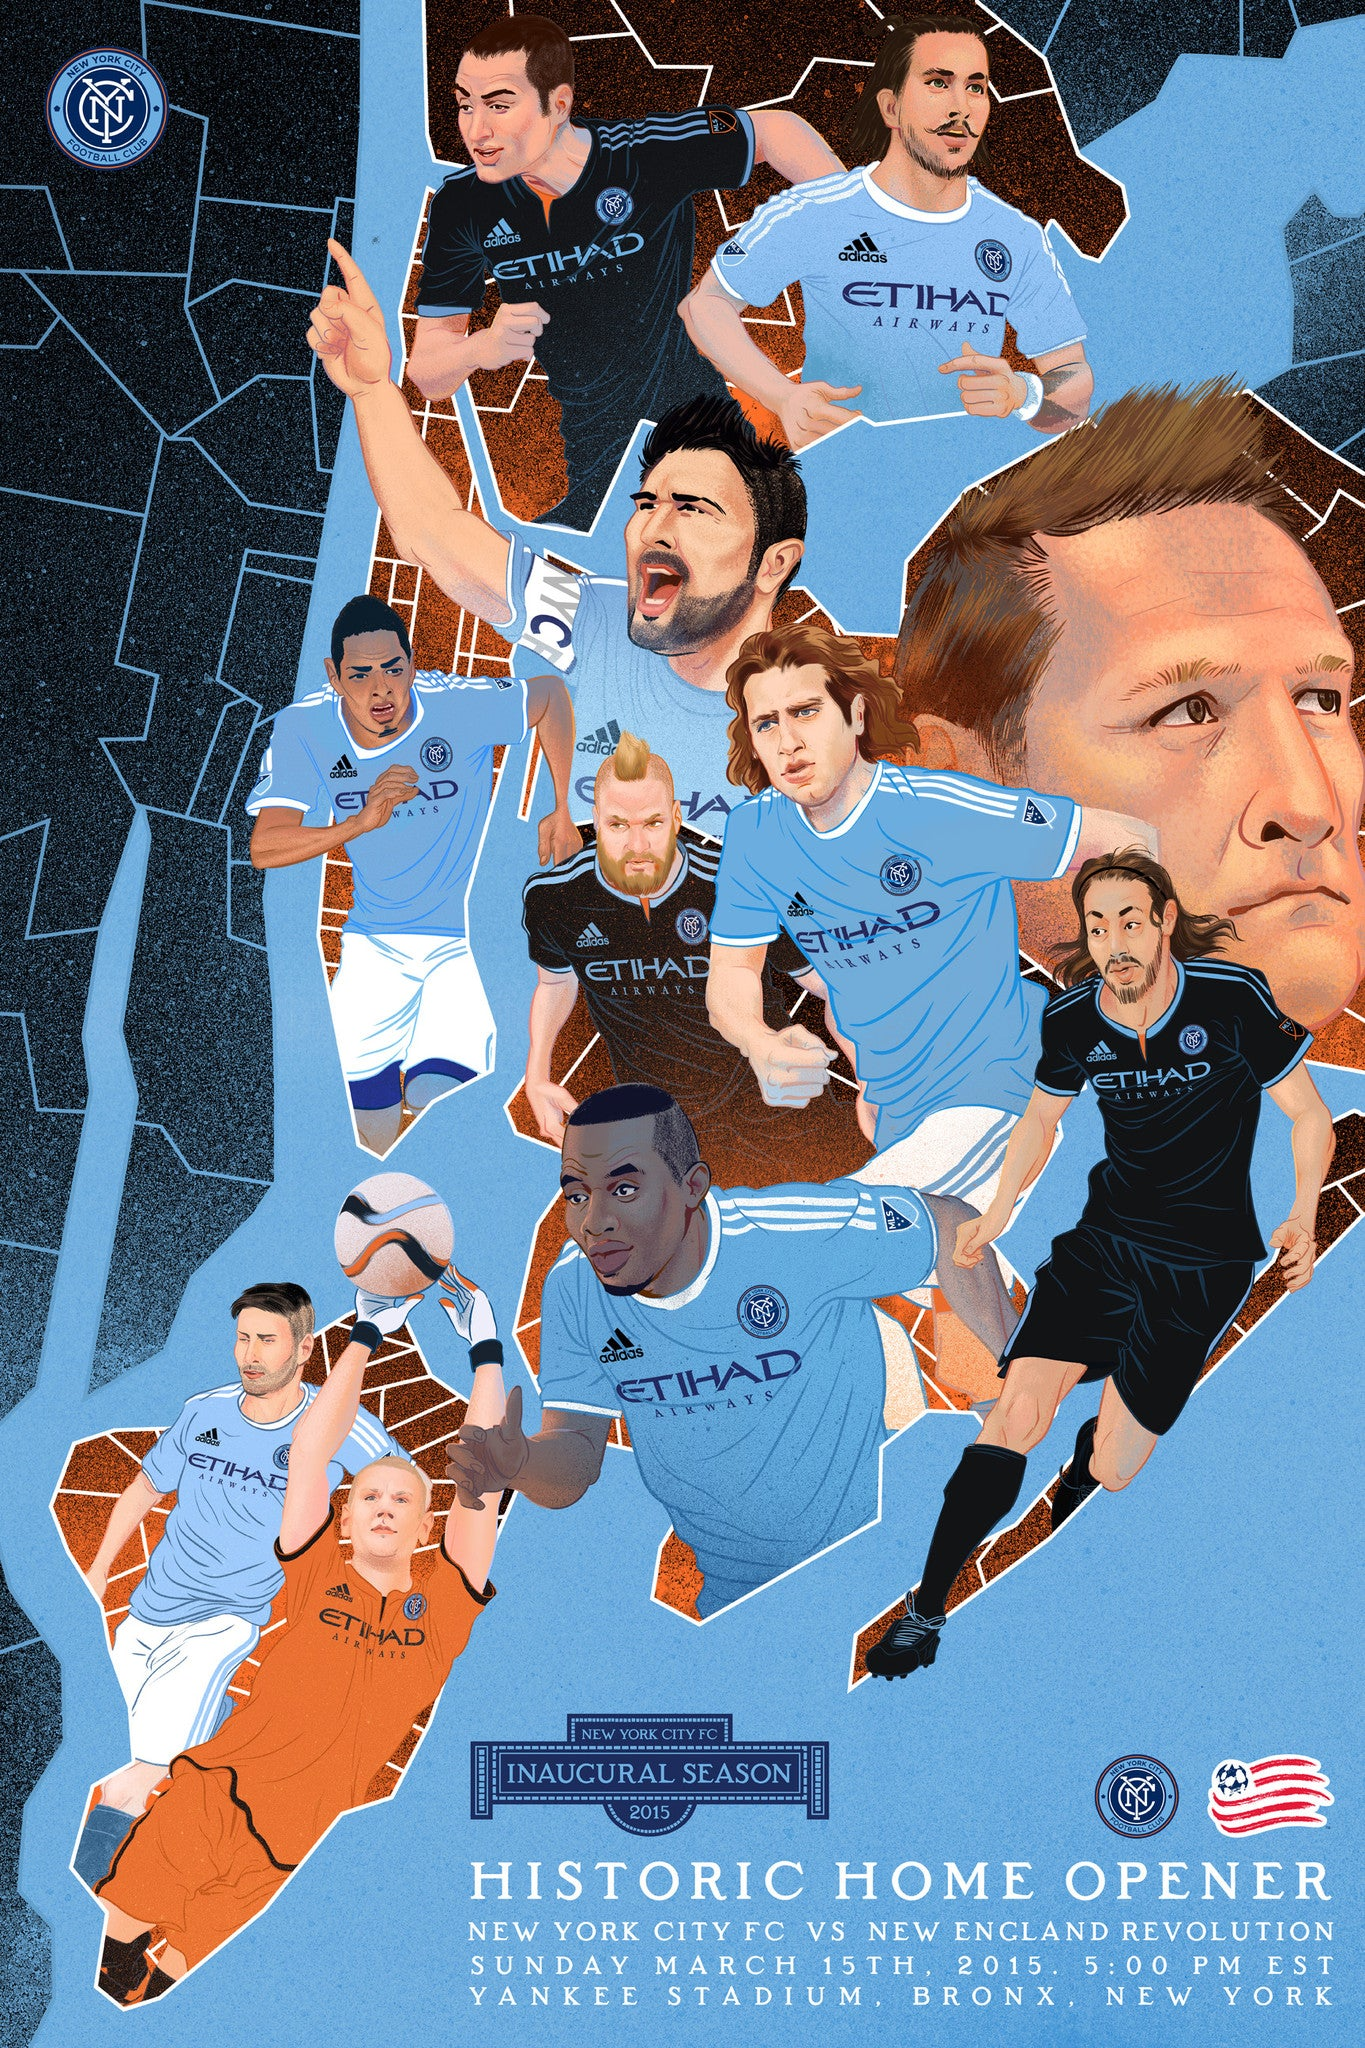 NYCFC Match Day Posters